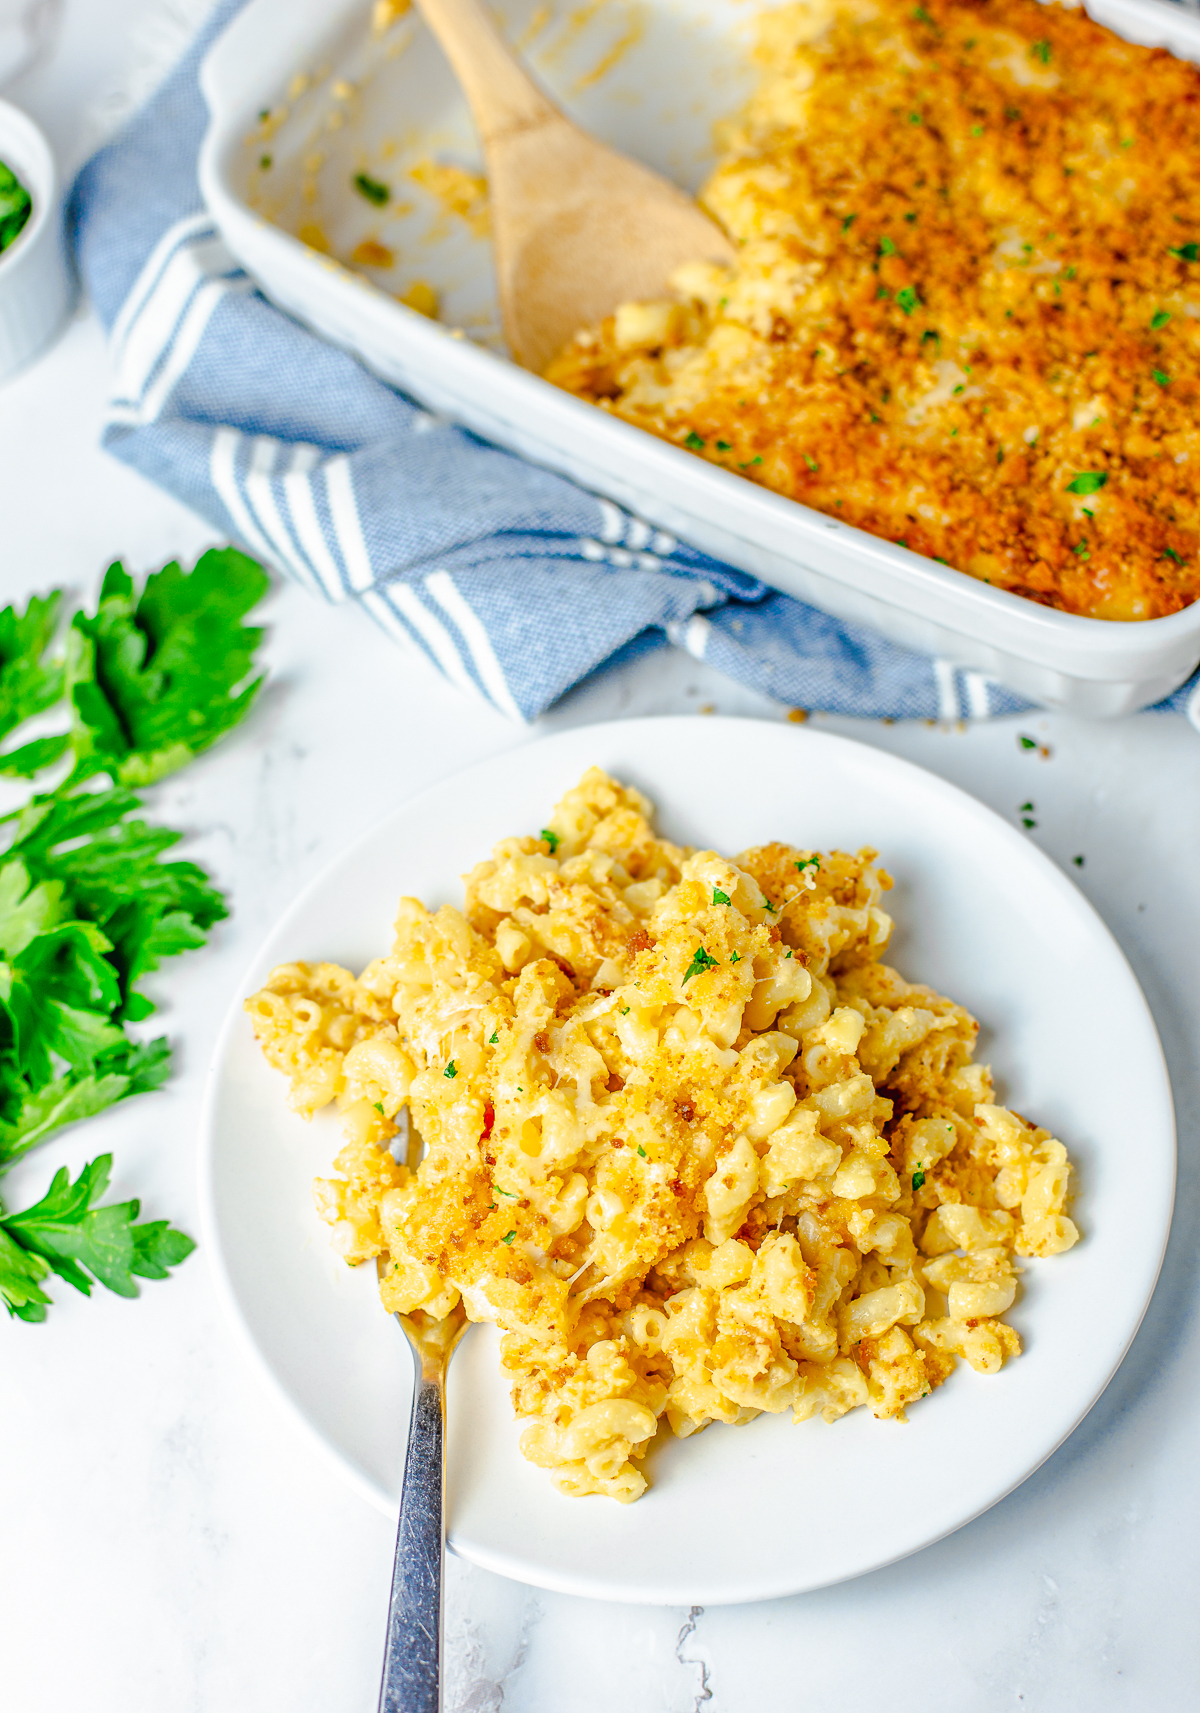 Overhead plate of Baked Macaroni and Cheese with Cornbread Crust on white plate with fork.